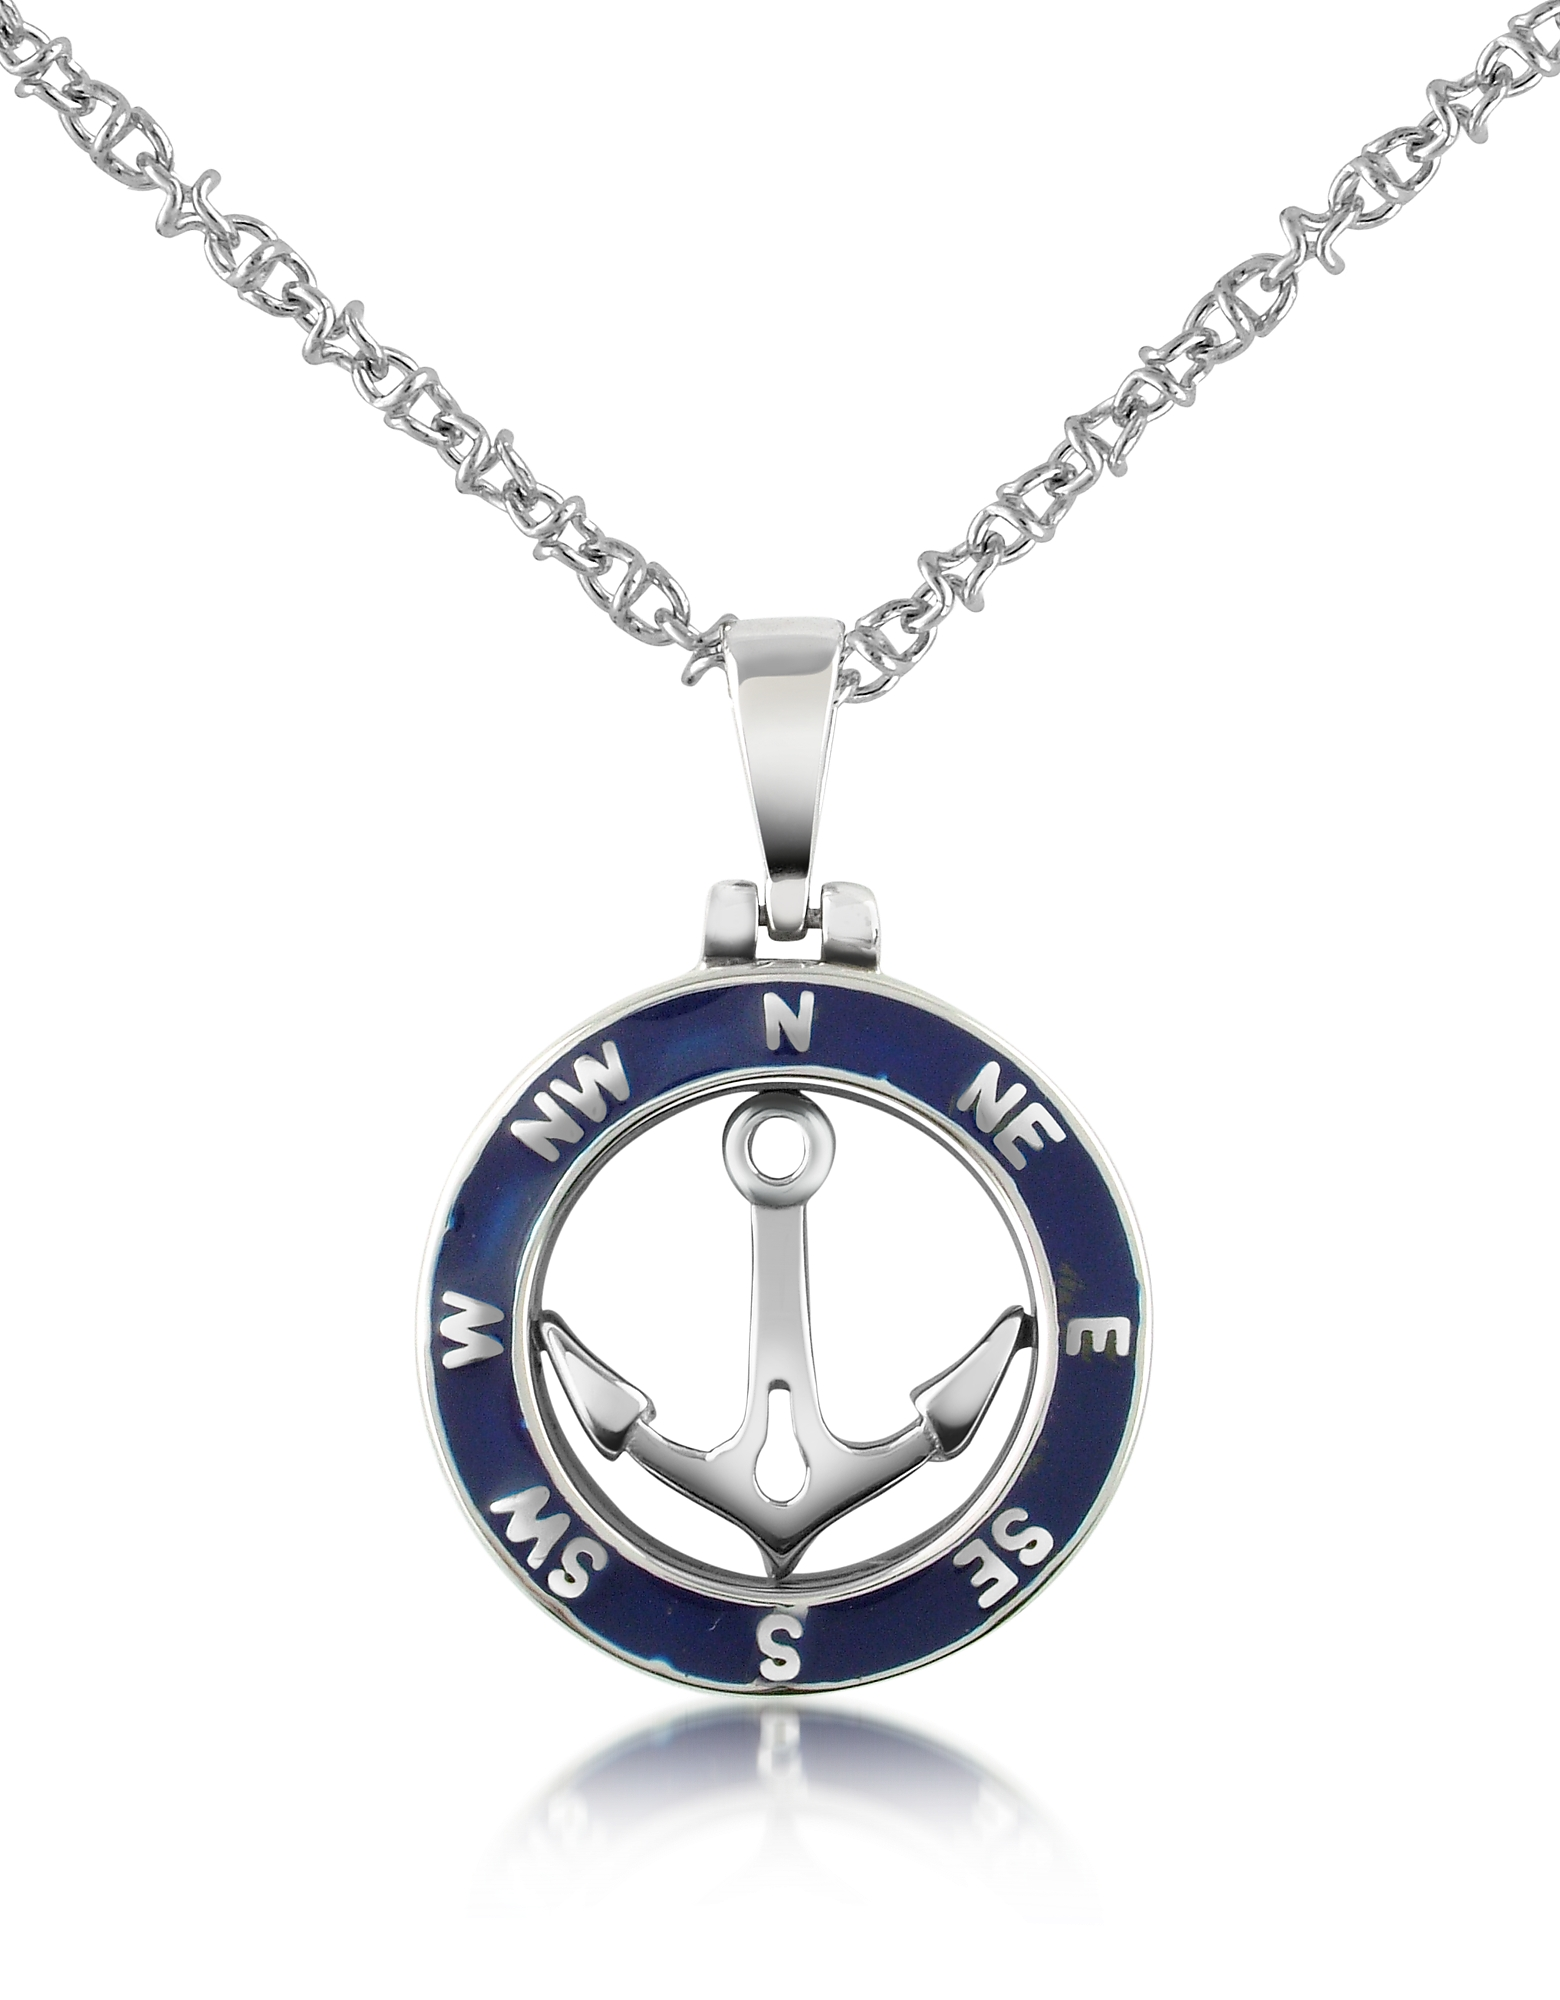 Forzieri Designer Men's Necklaces, Stainless Steel Anchor Pendant Necklace